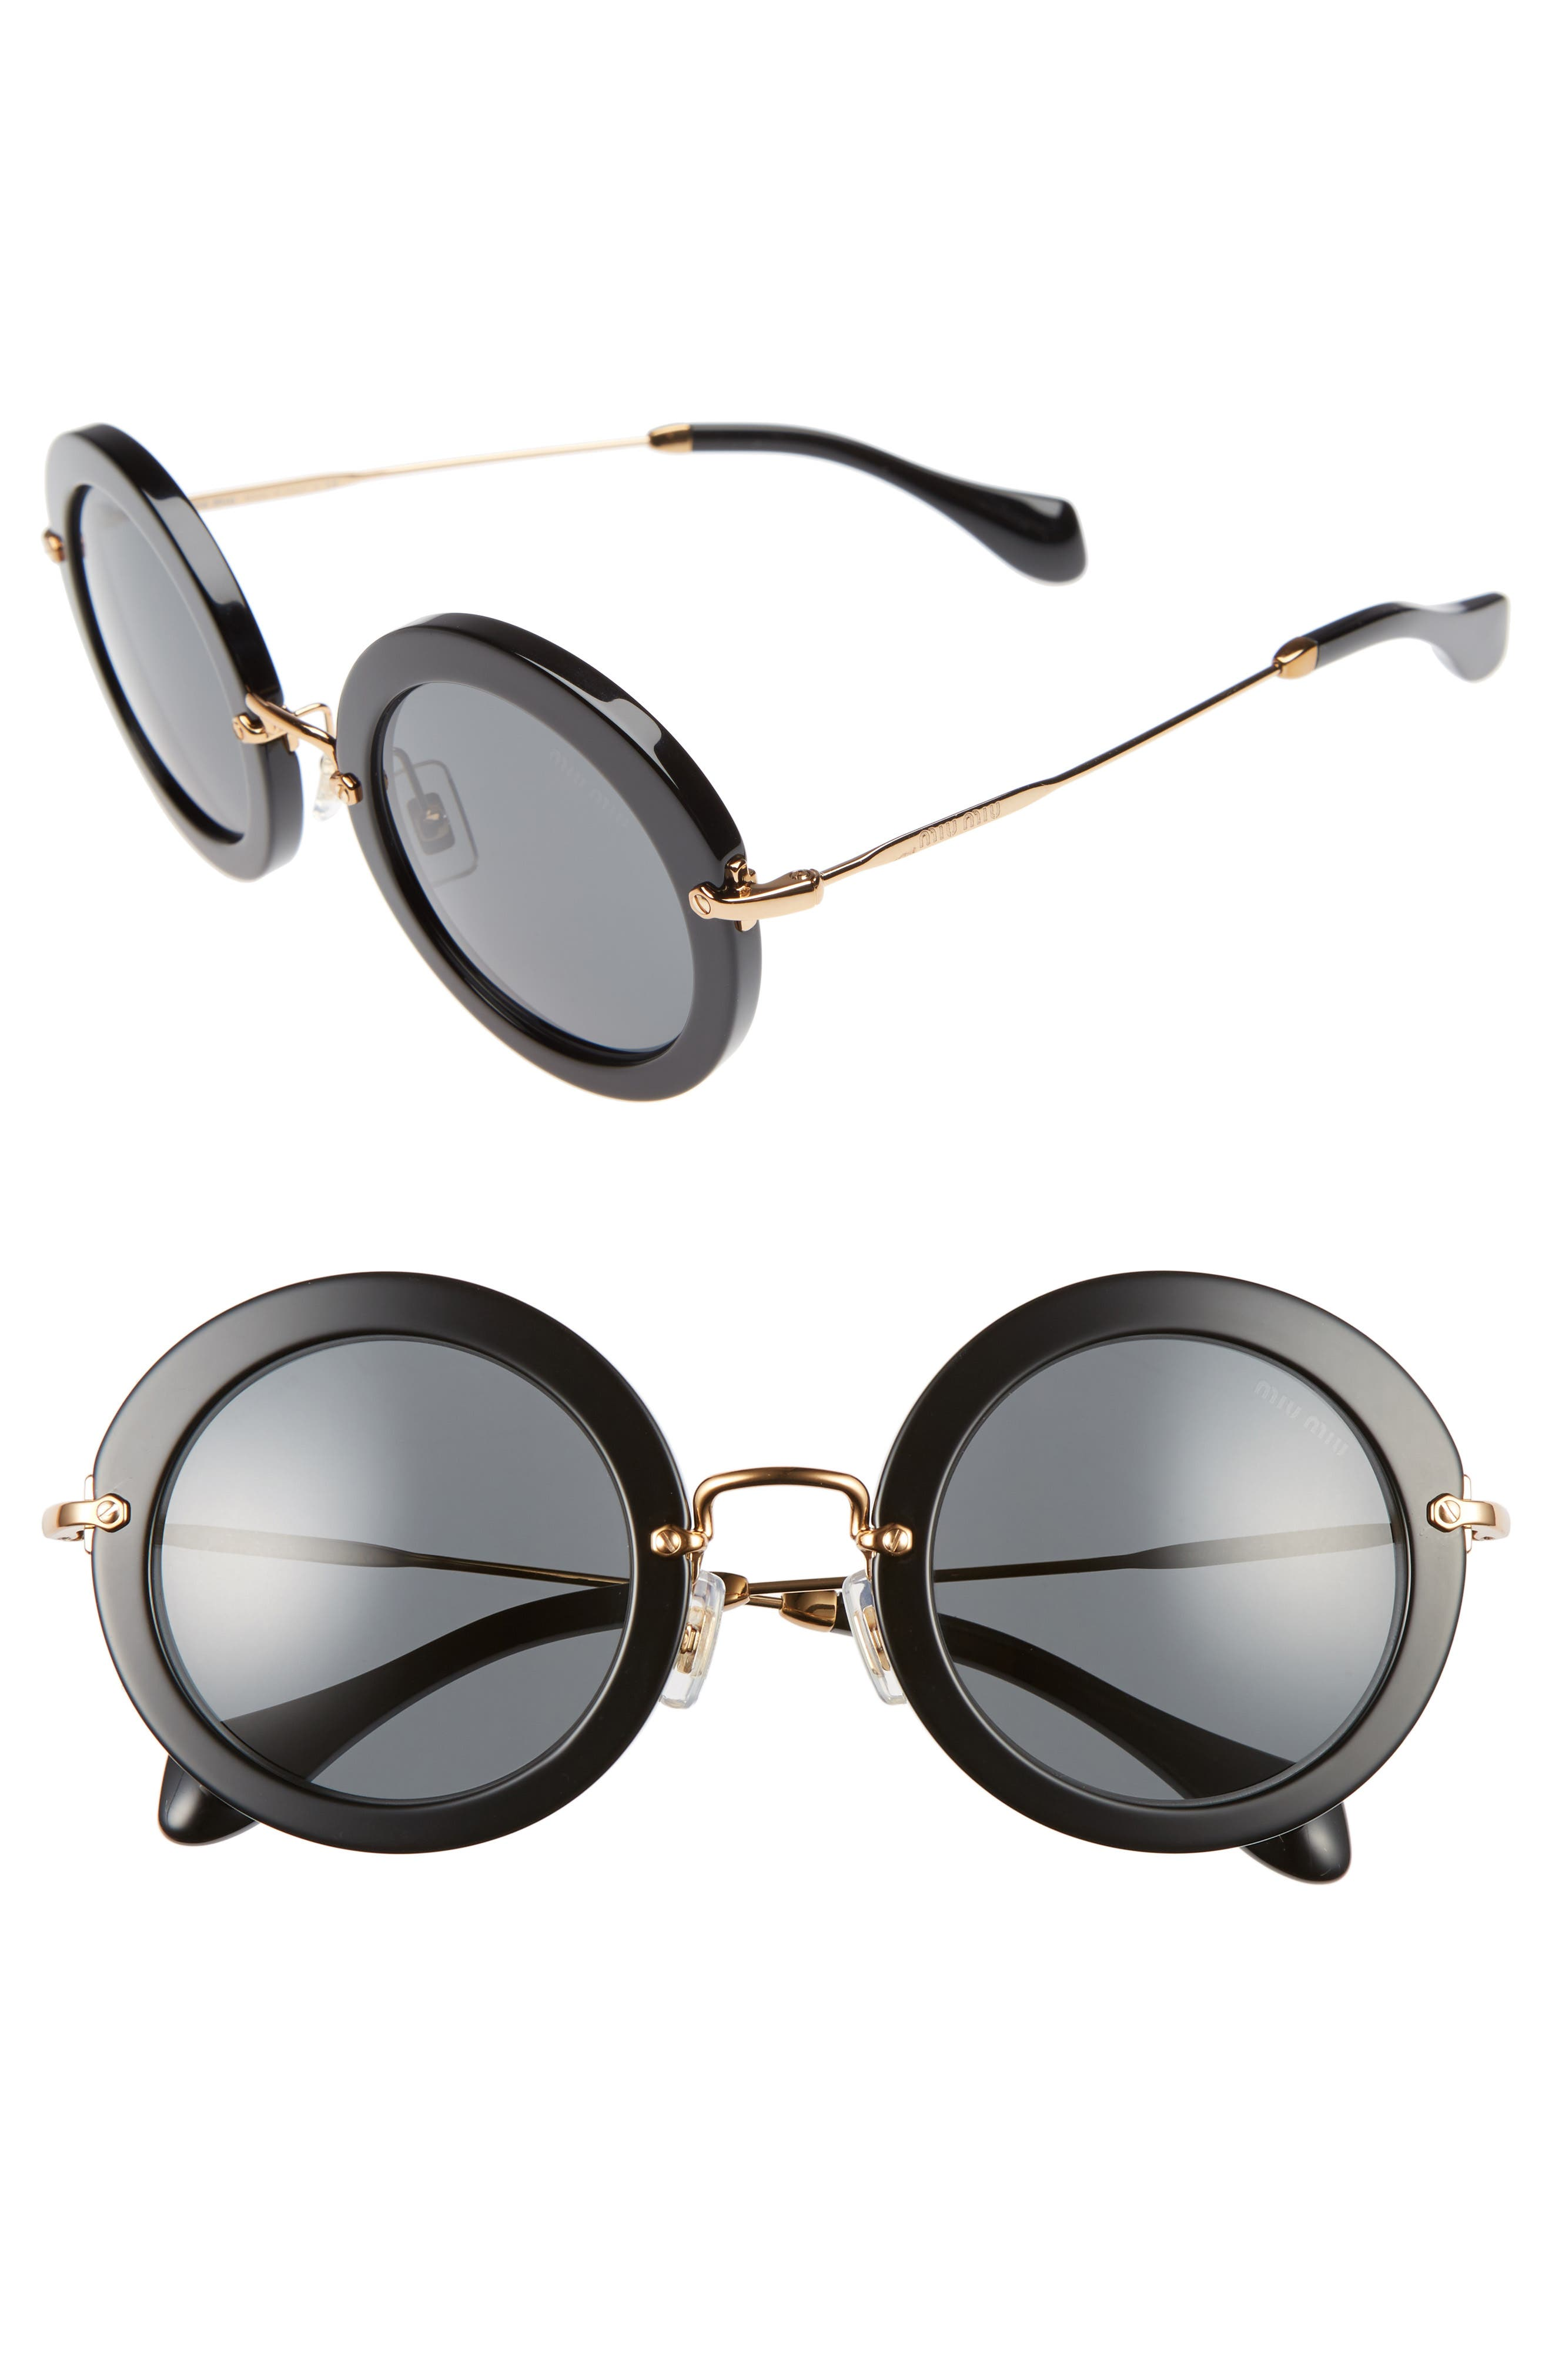 Main Image - Miu Miu 49mm Round Retro Sunglasses